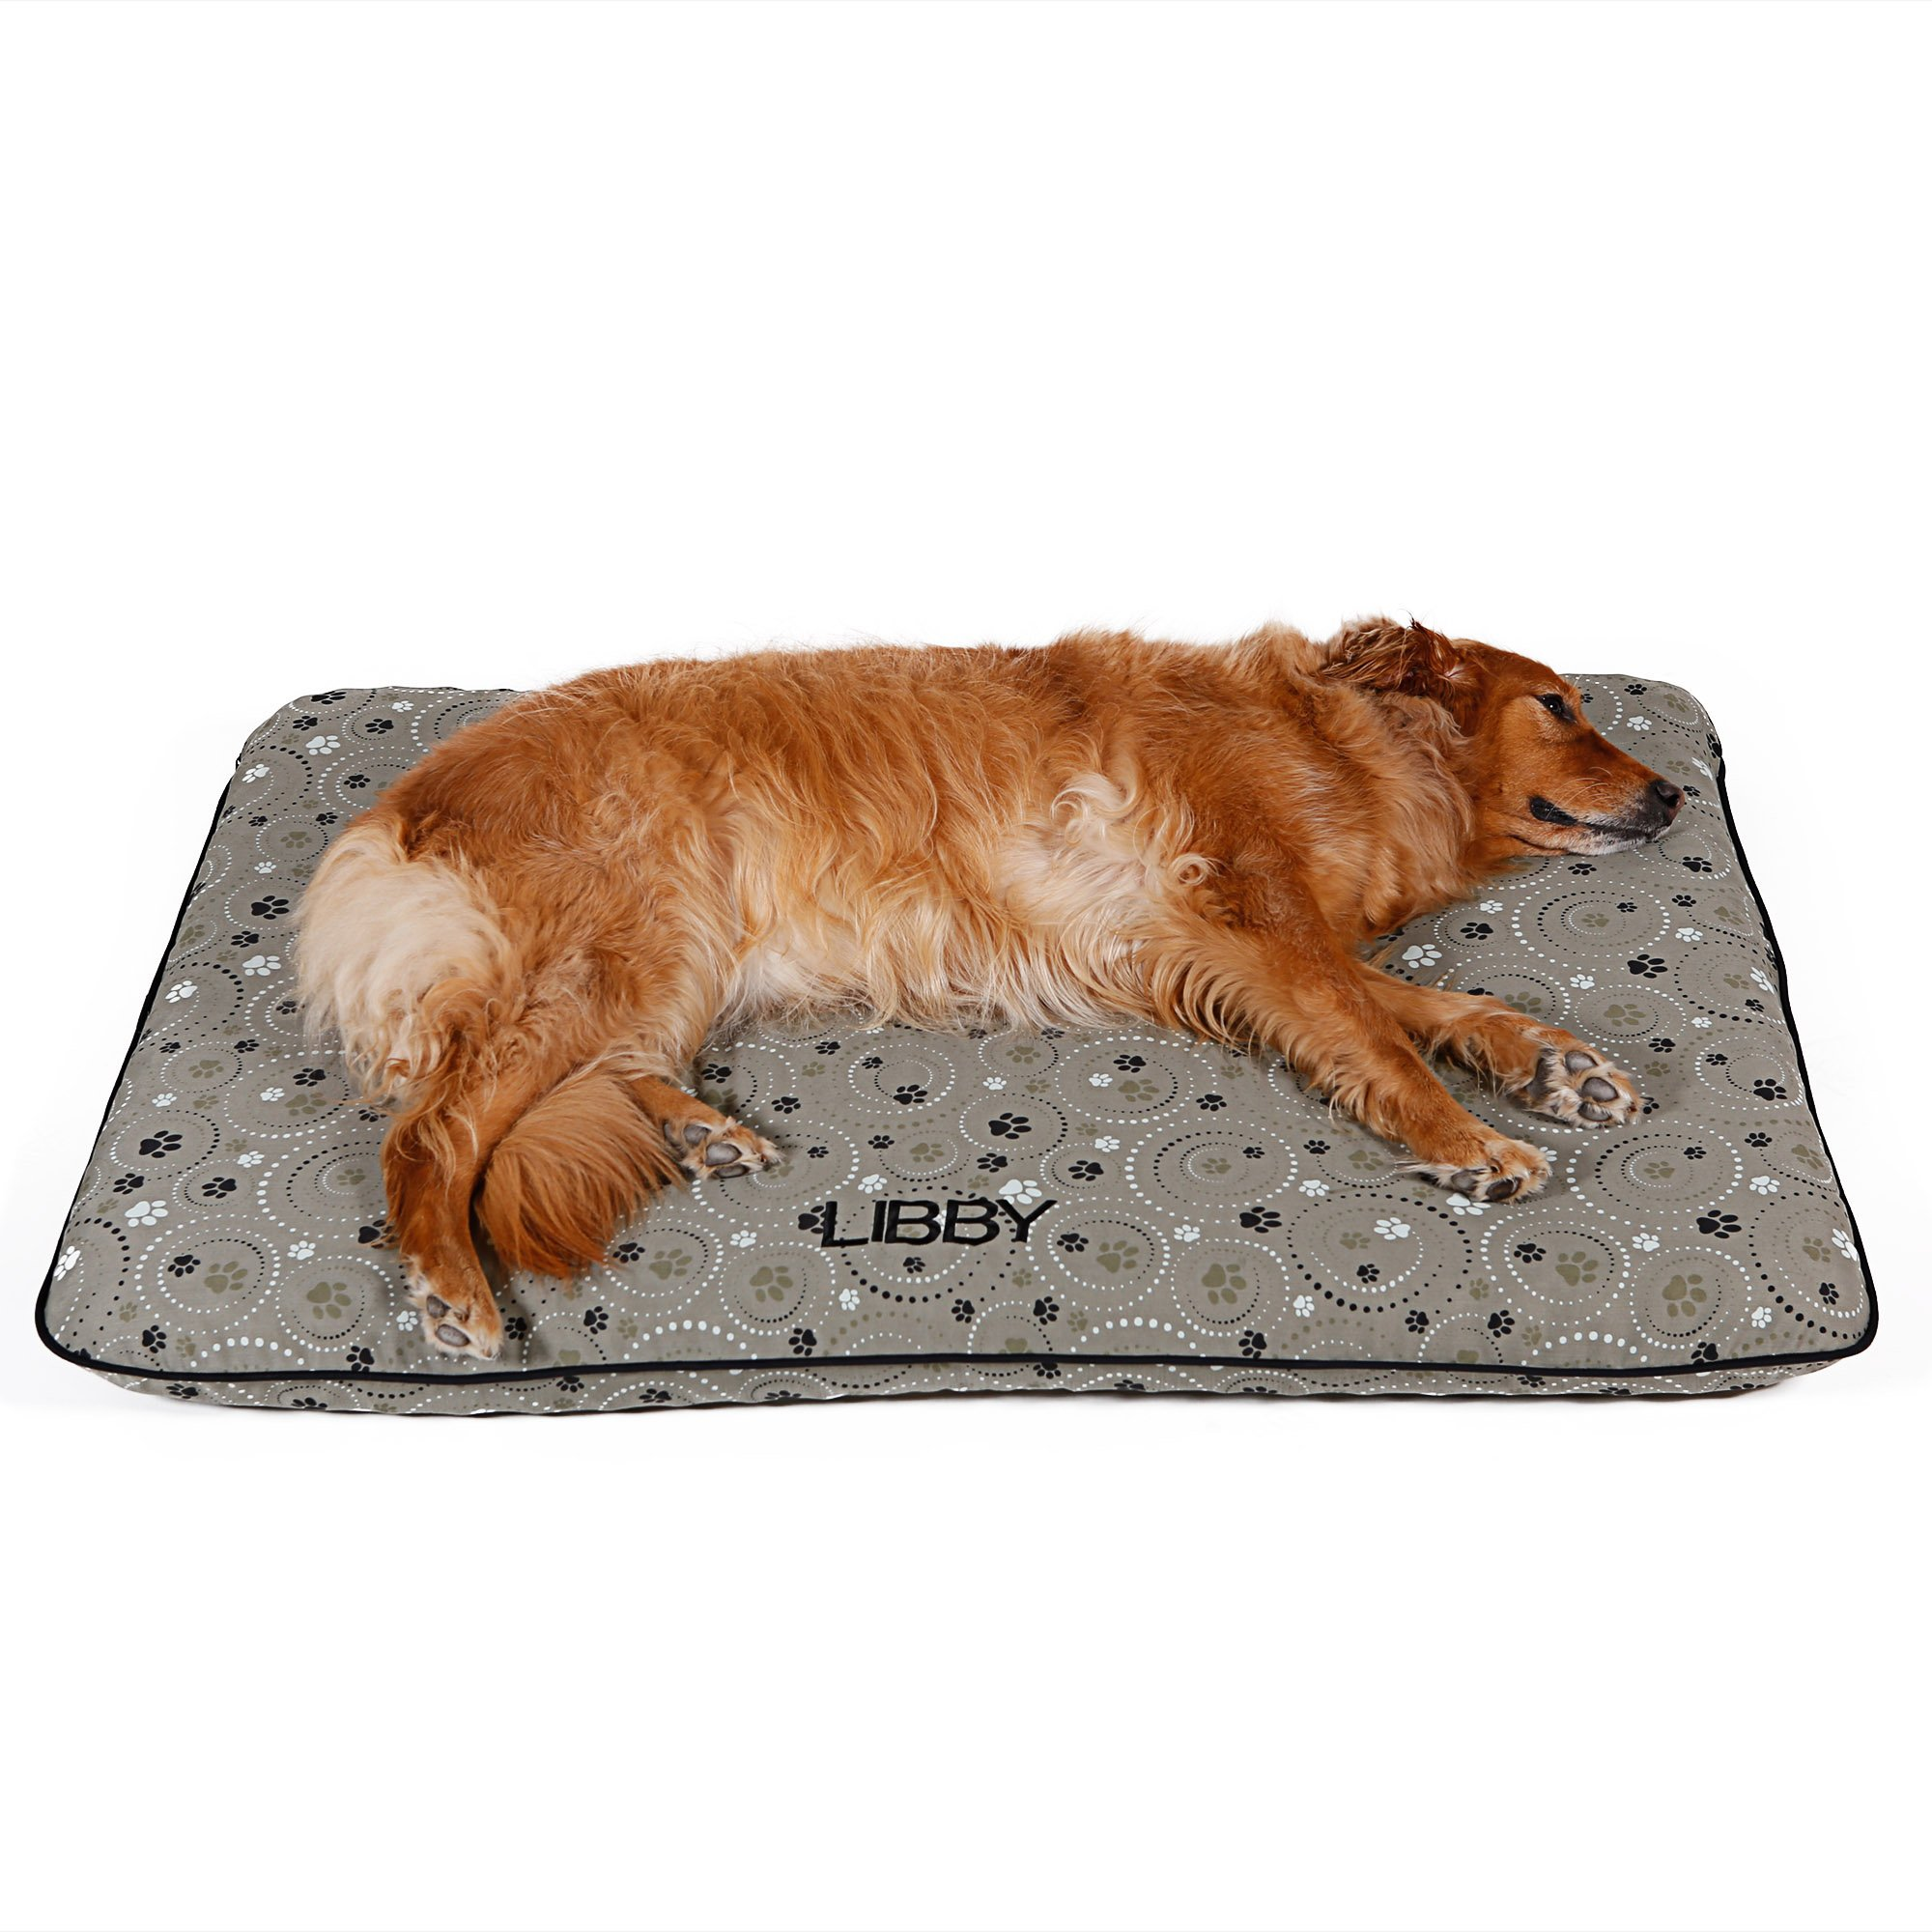 india n prazuchi bed blue dog indestructible online product waterproof in chewproof wuff tiffany tuff buy